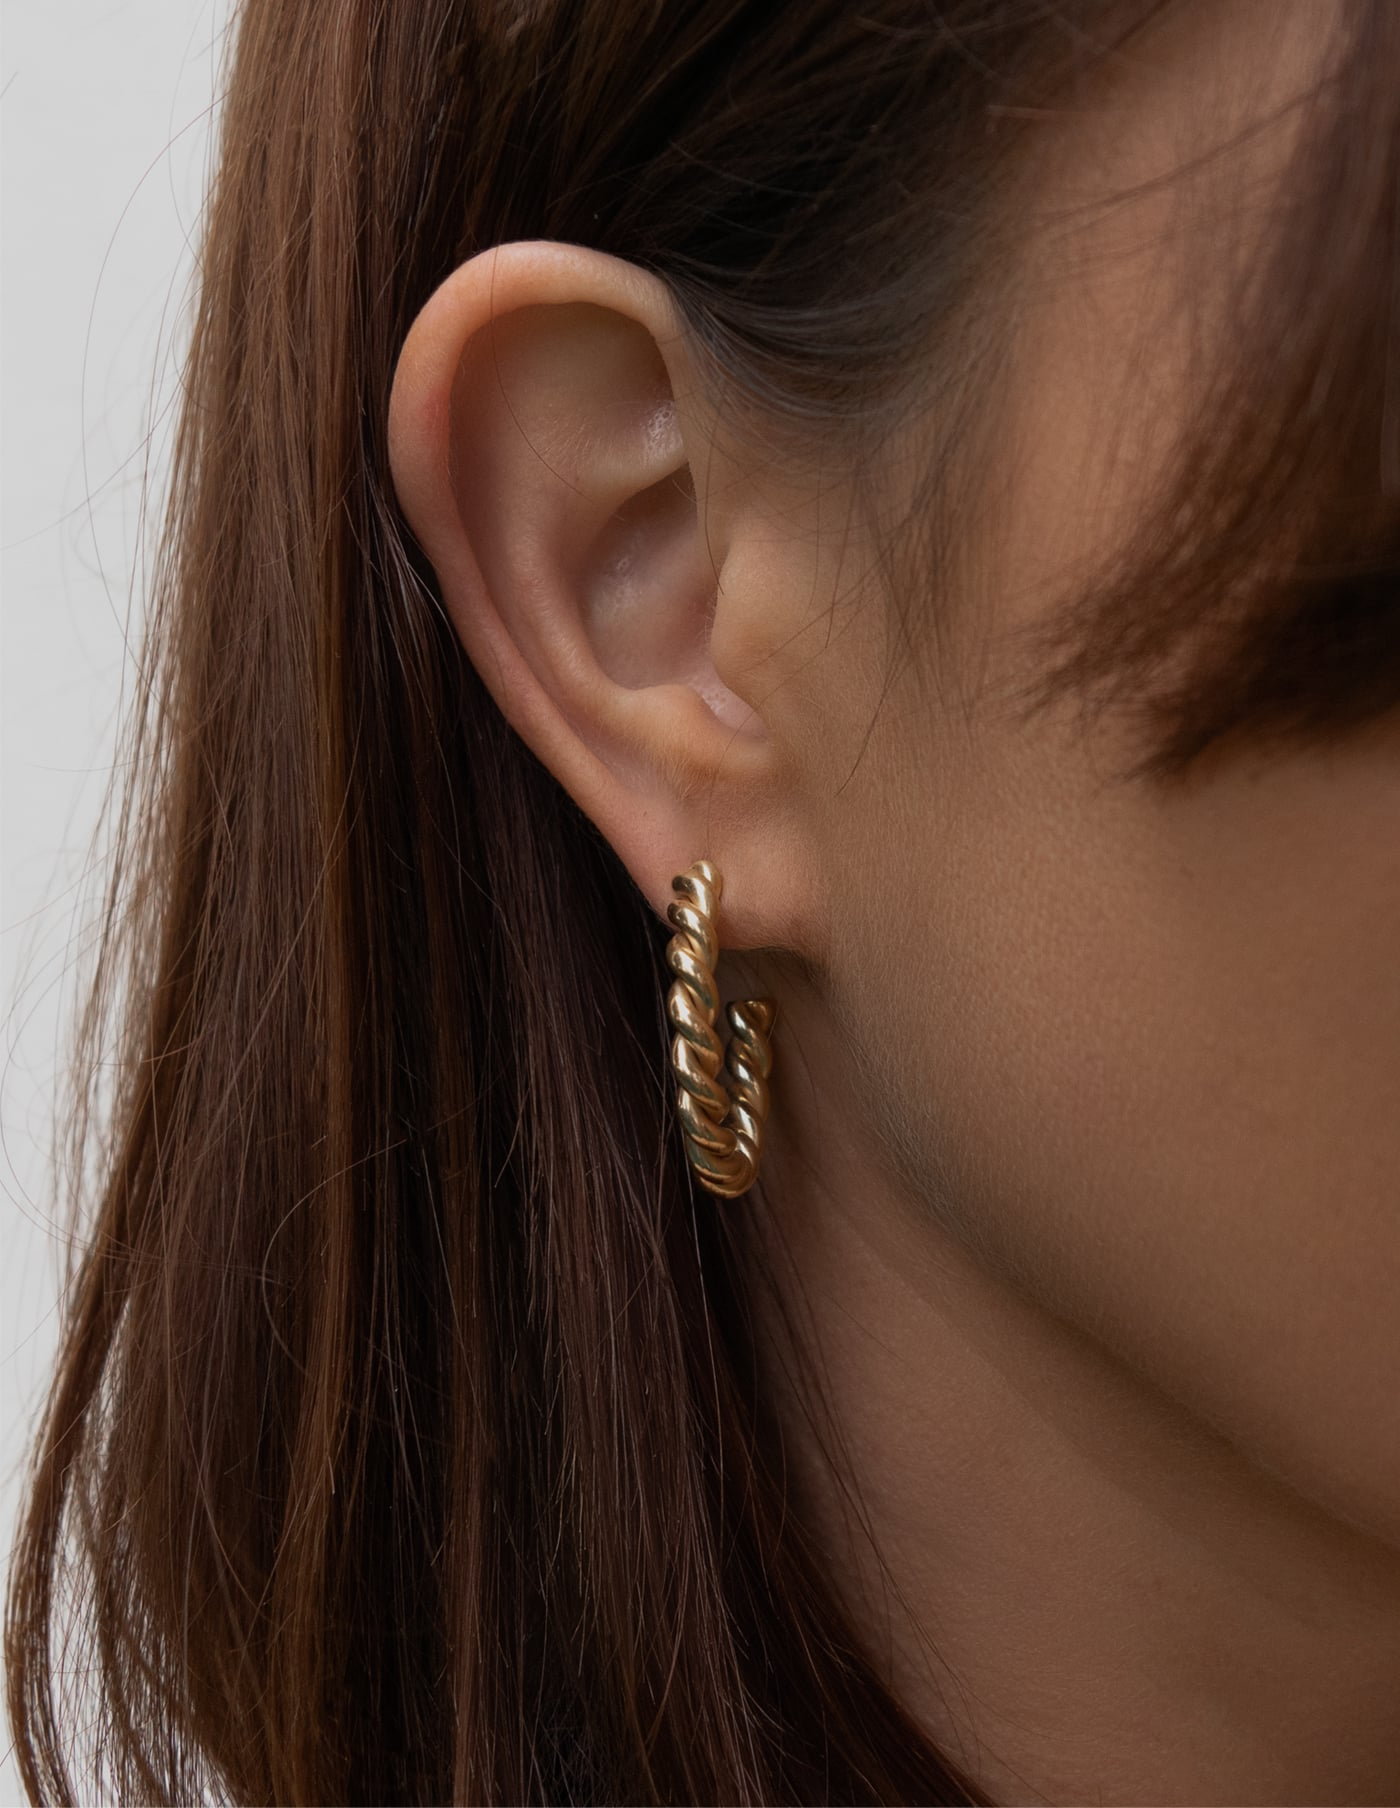 Gold Twist Hoop Earrings, Forever Lasting